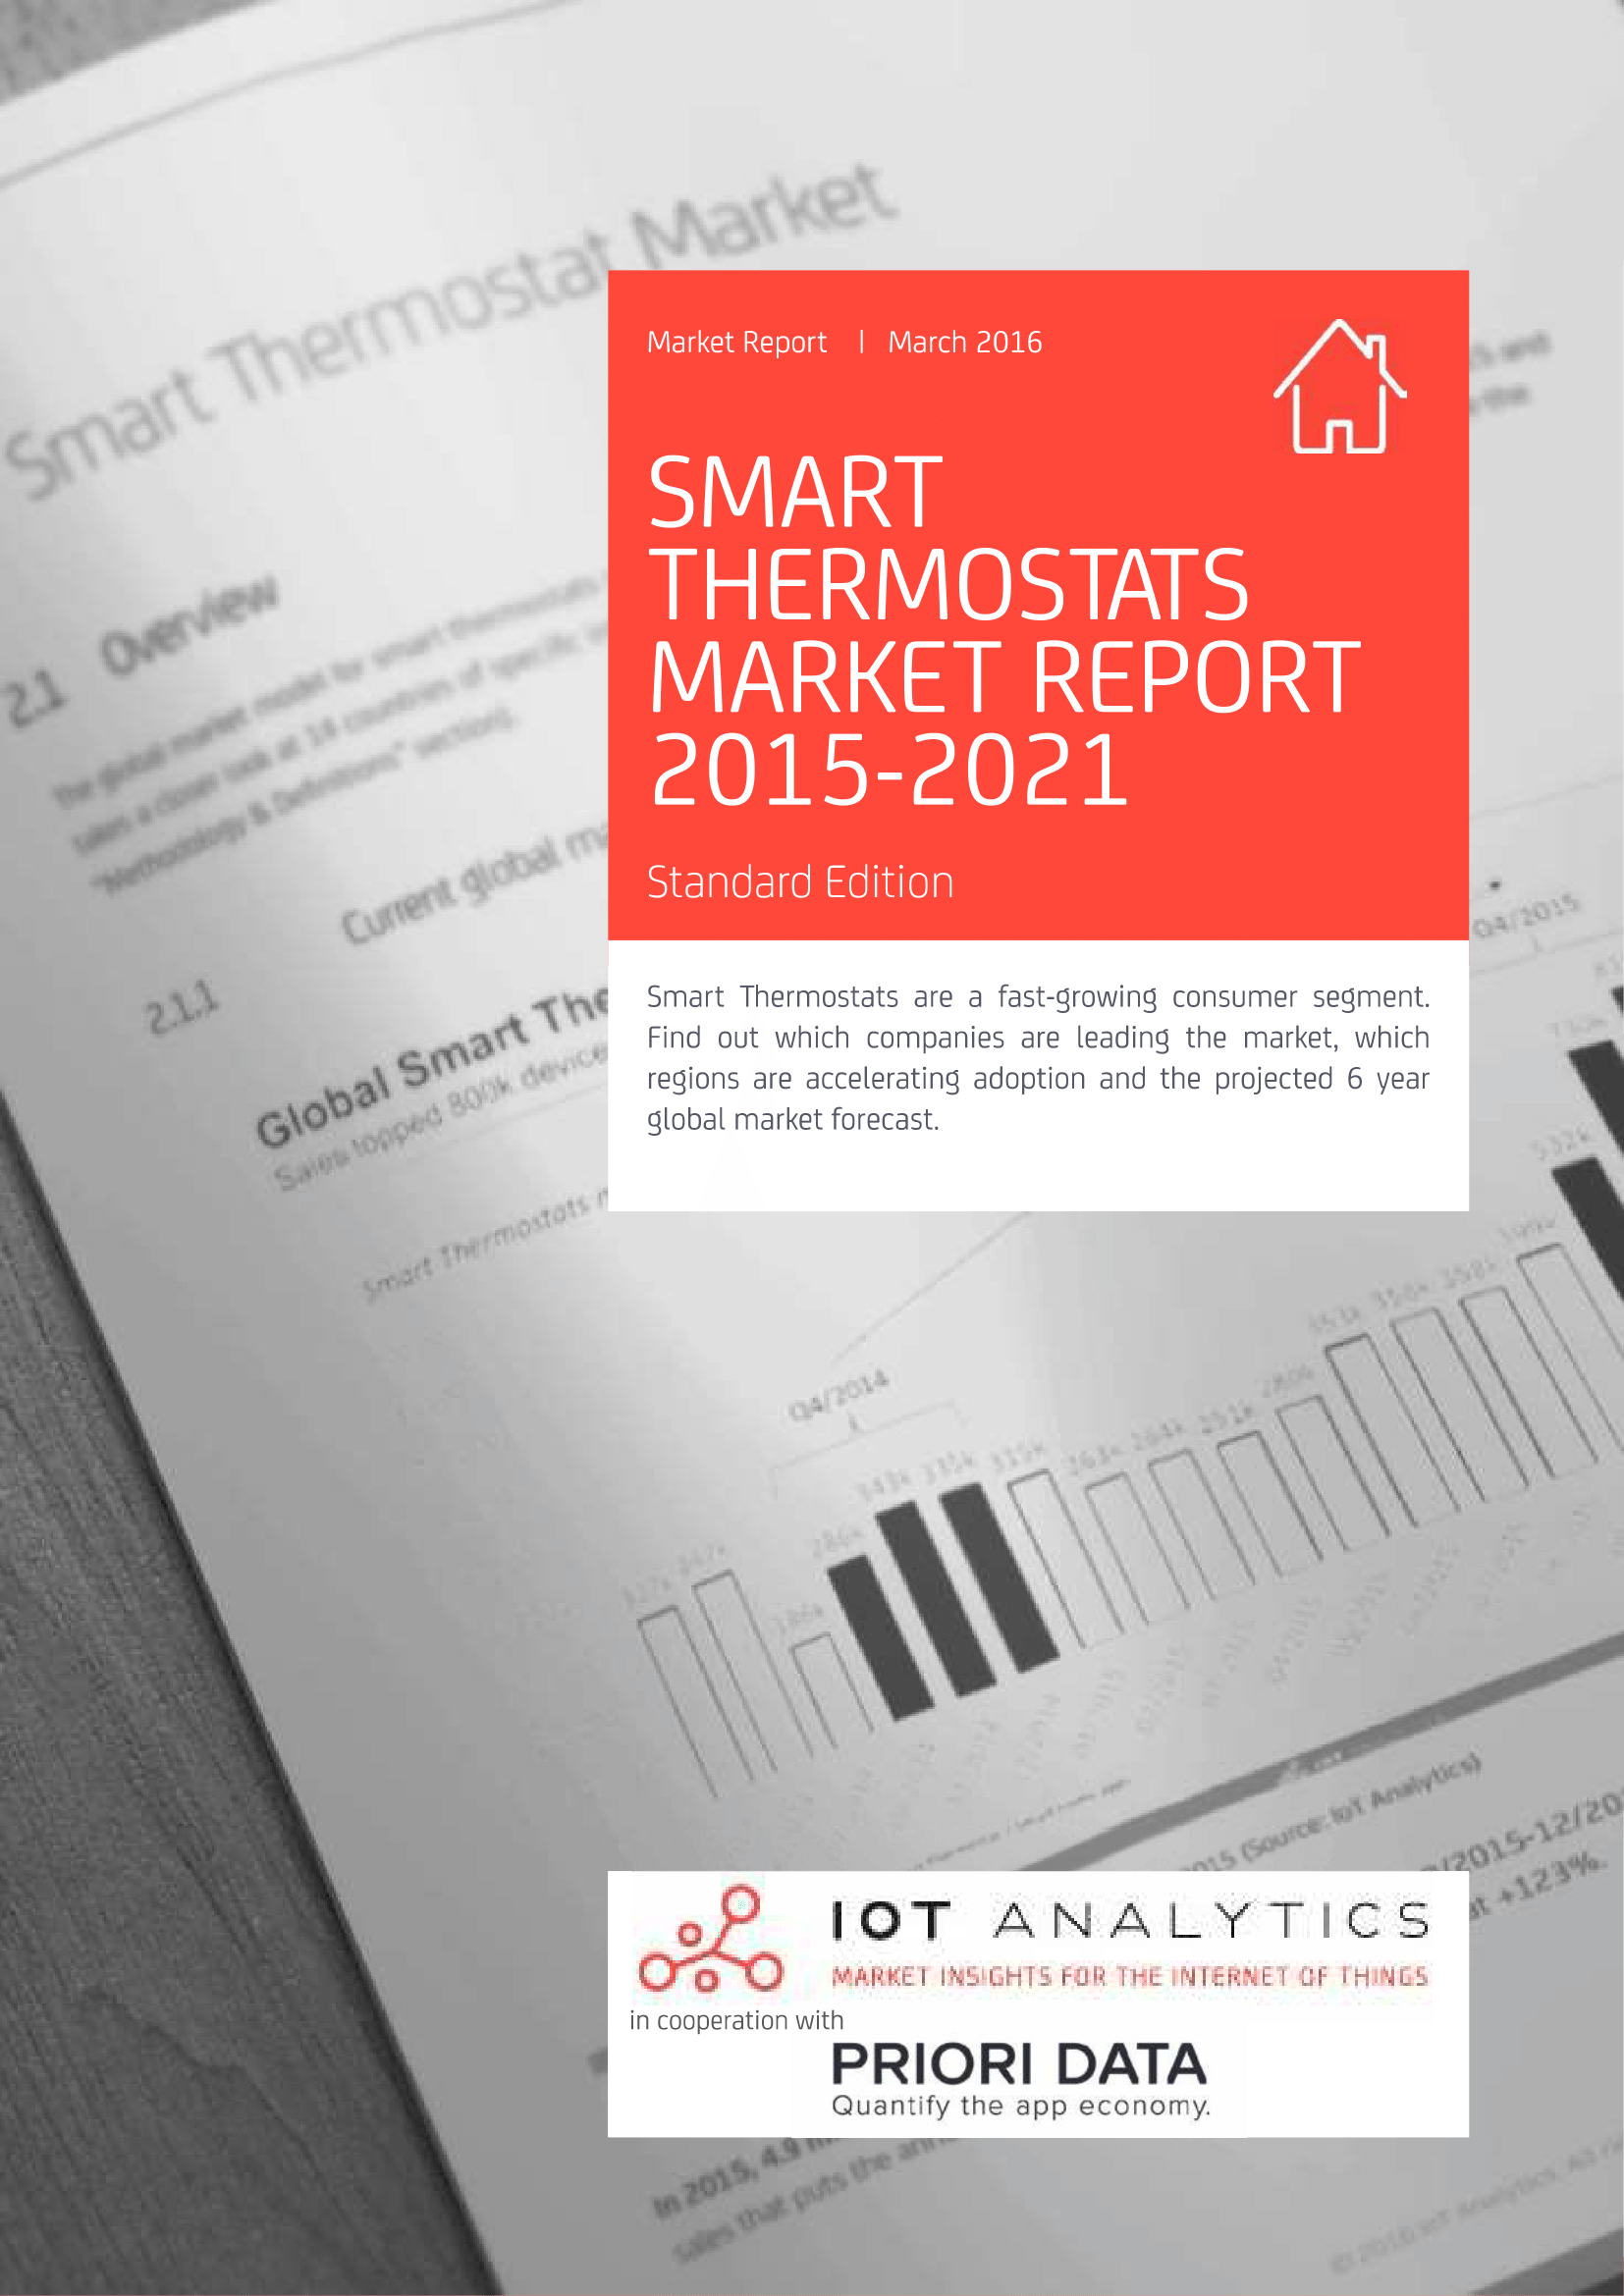 Smart Thermostat Market Report cover page